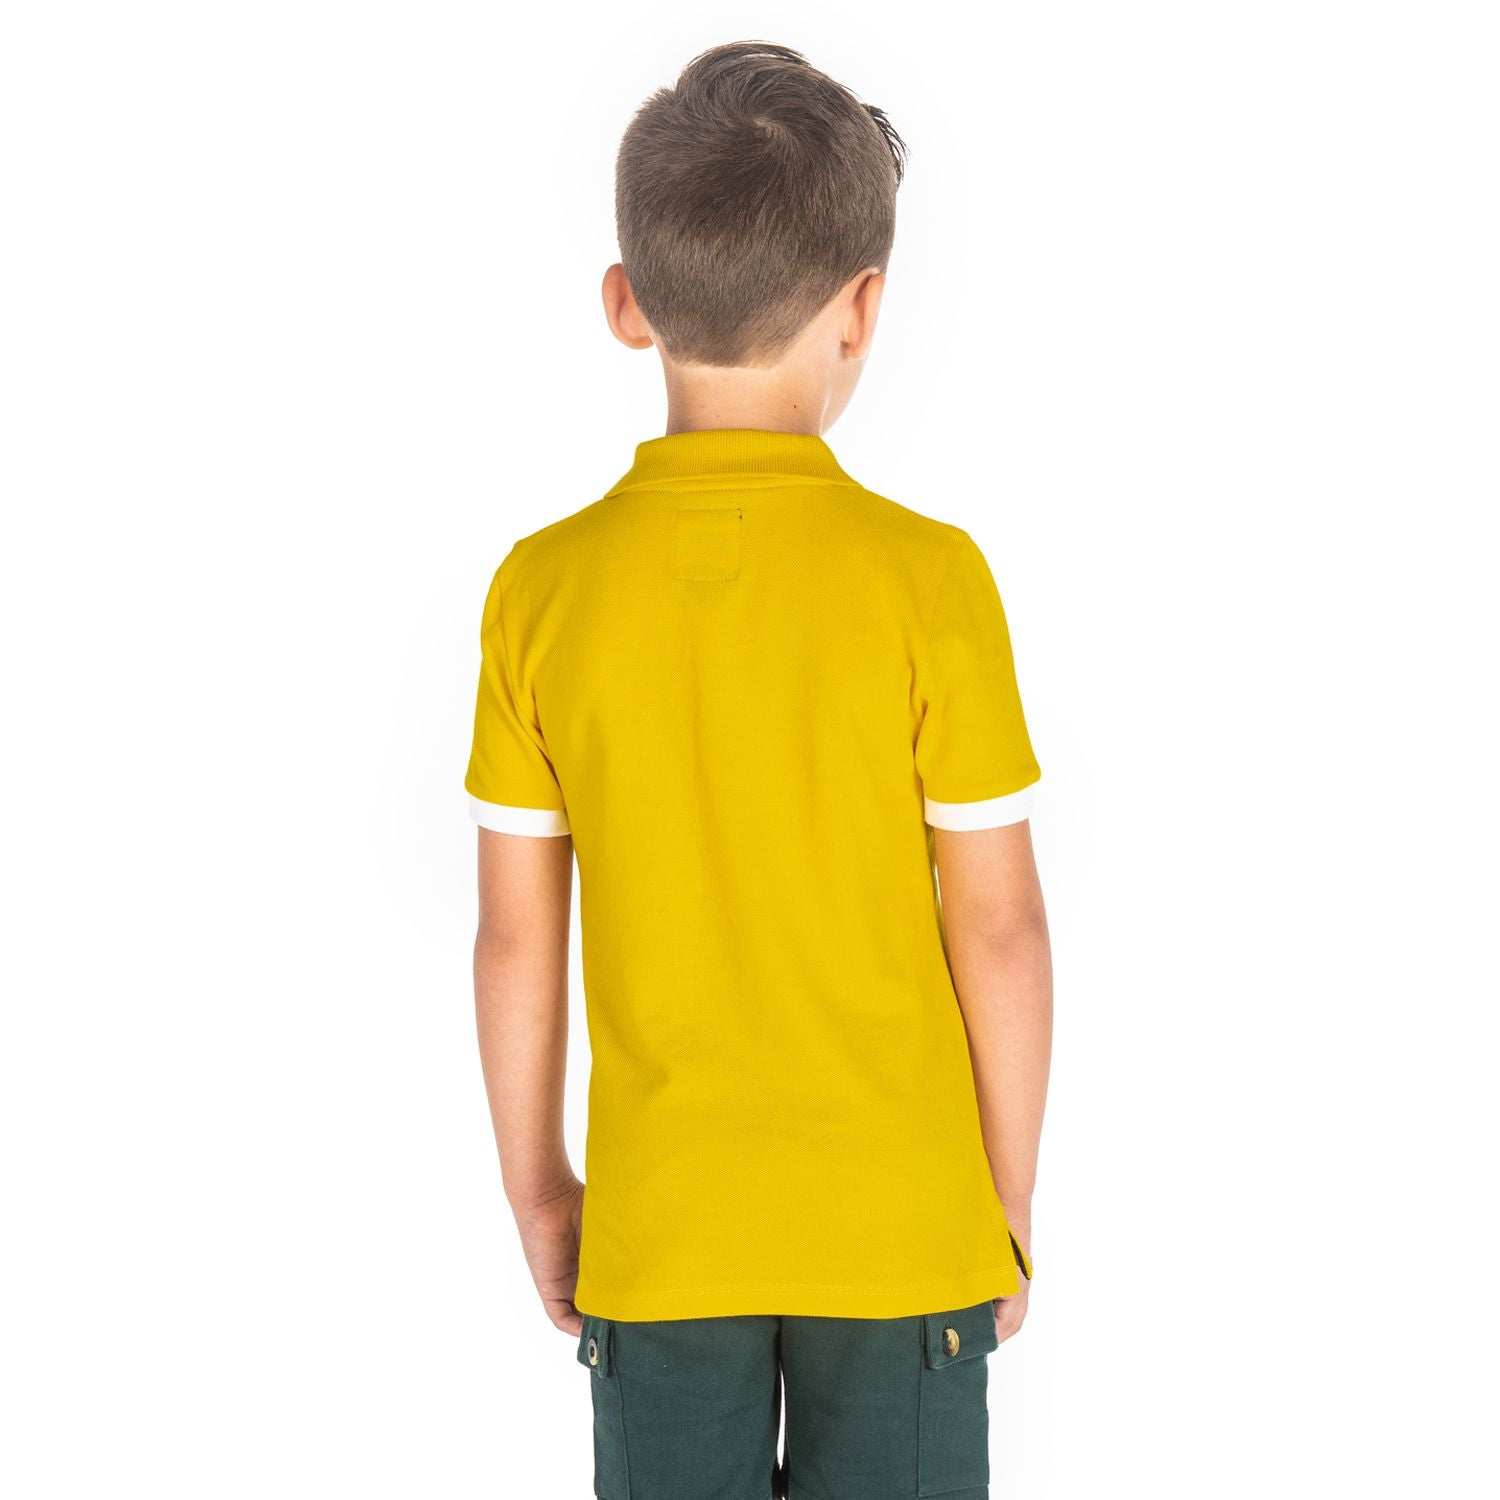 Snappy Polo for Boys